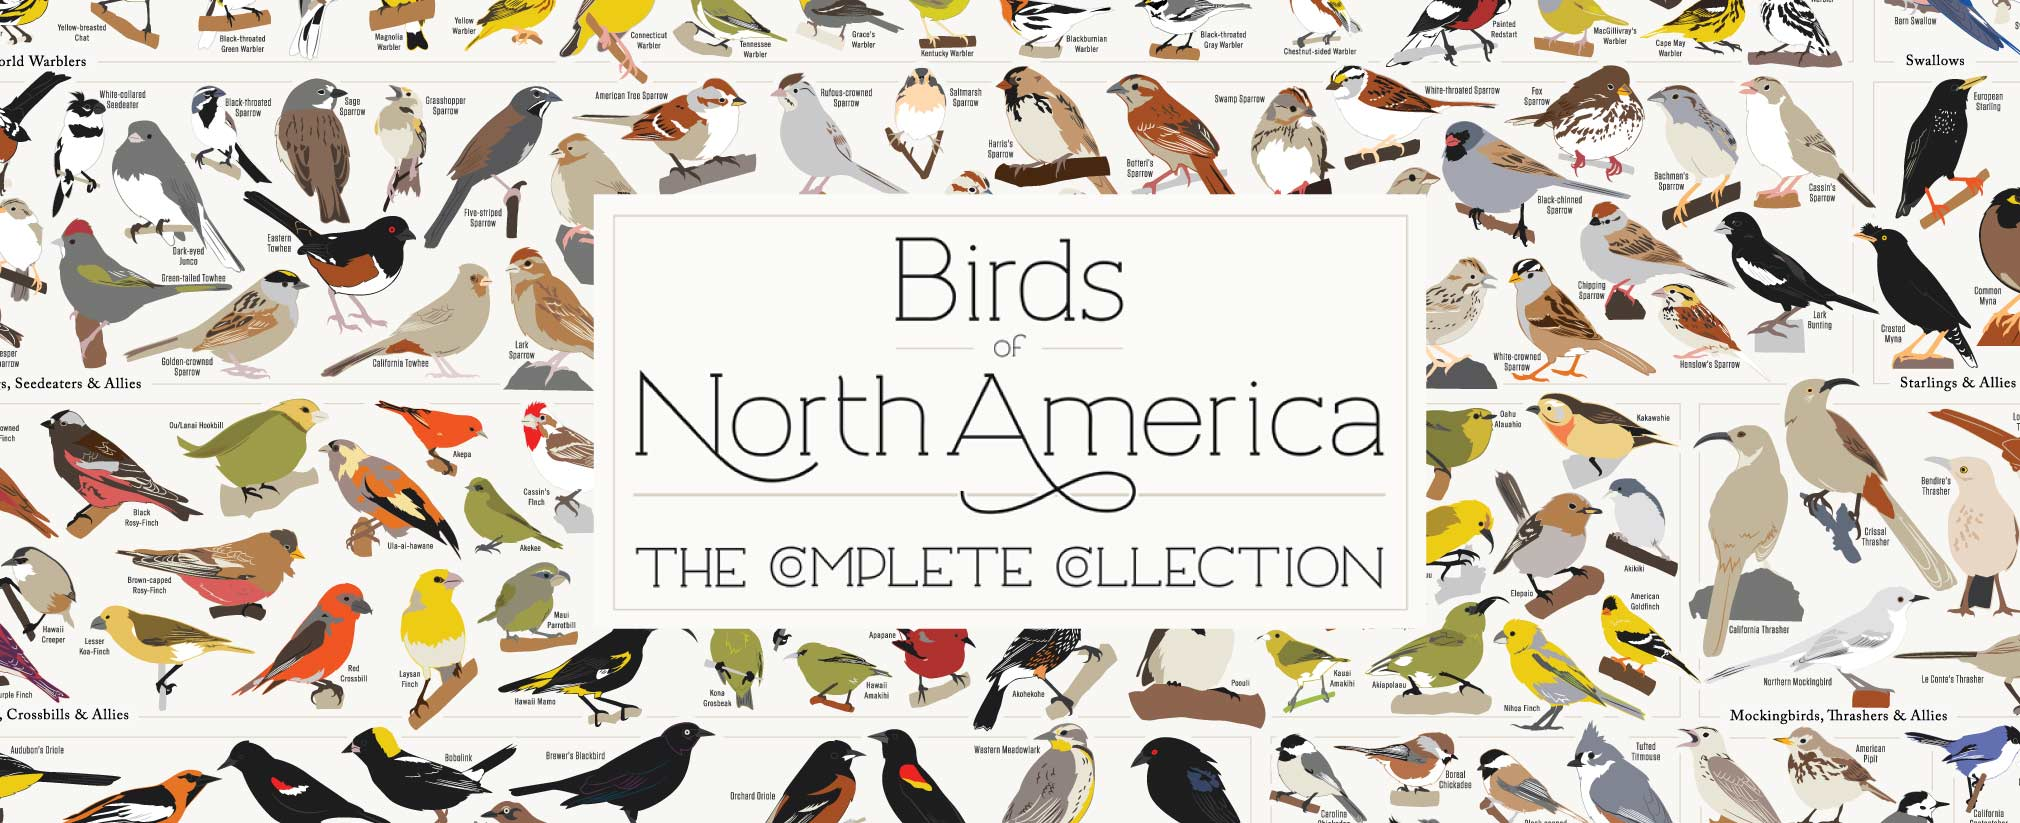 Birds Of North America Poster The Complete Collecrtion